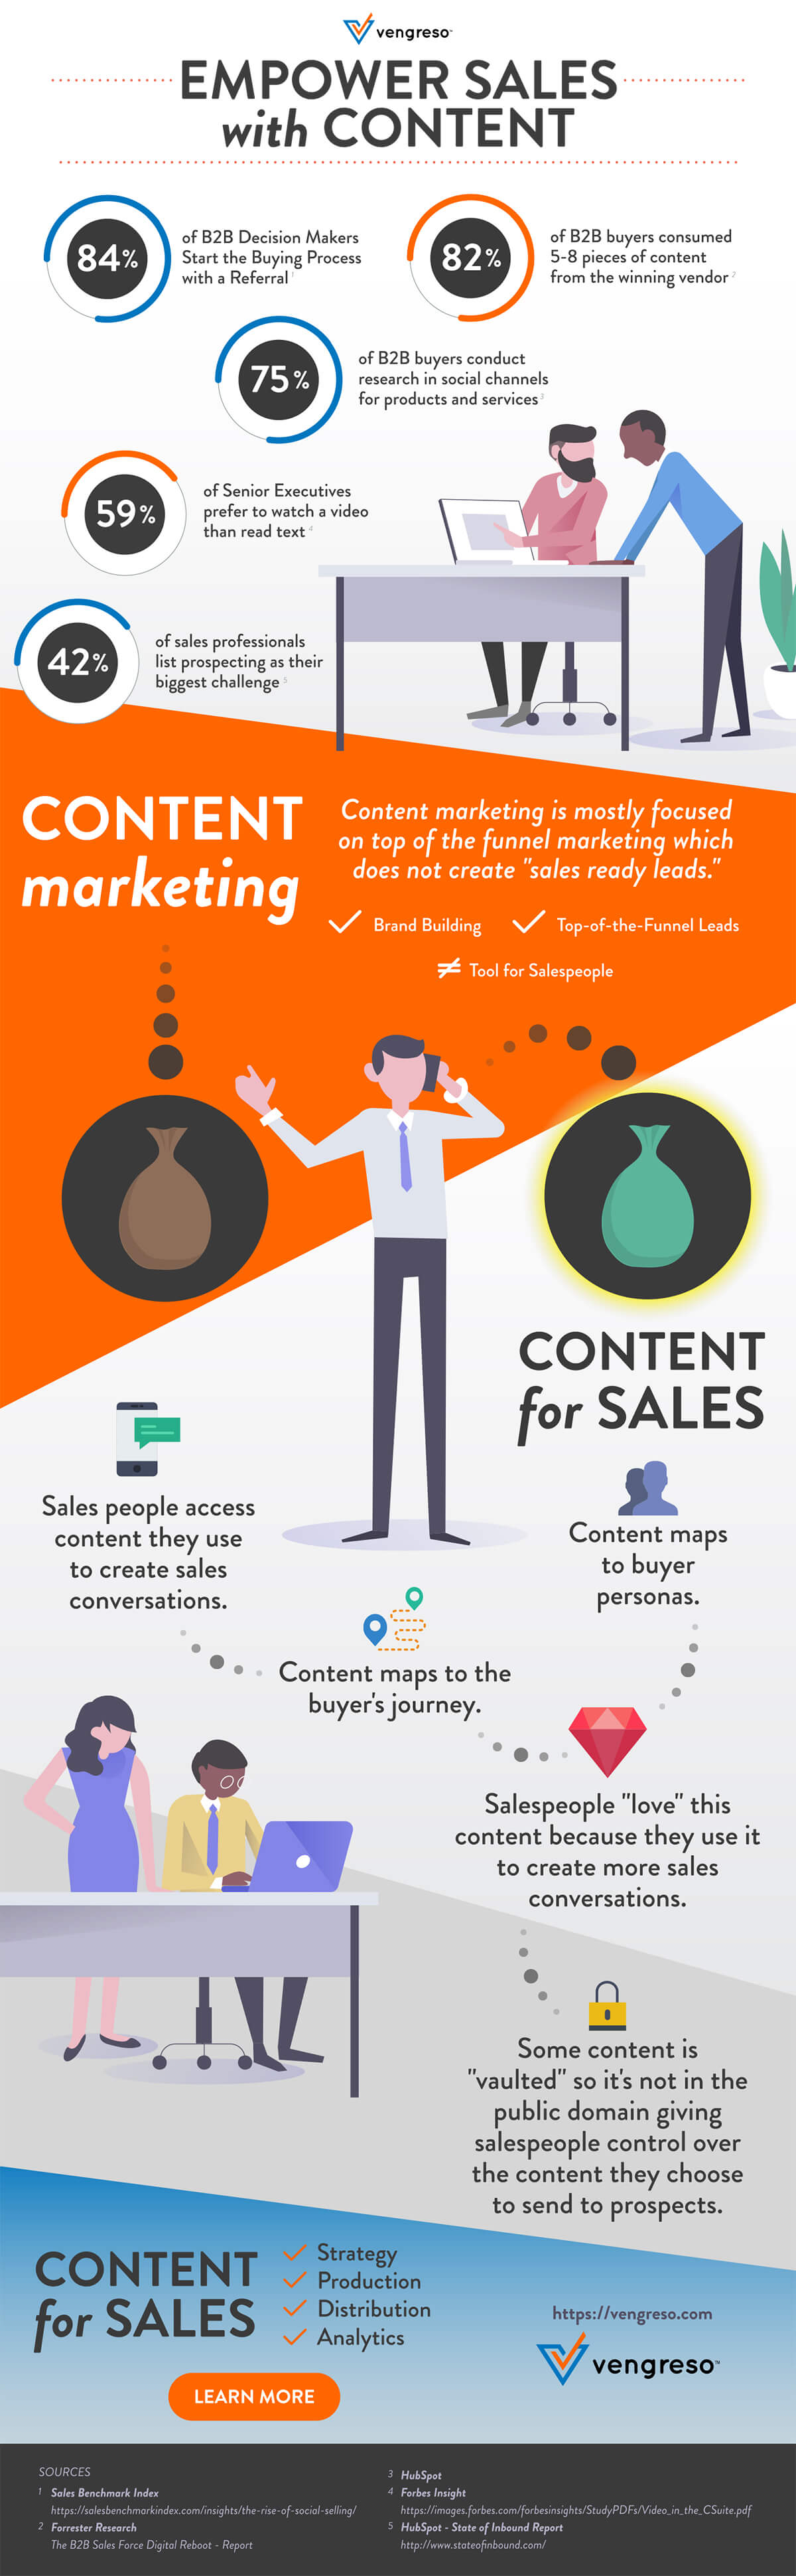 Empower Sales with Content - Content for Sales - Infographic by Vengreso